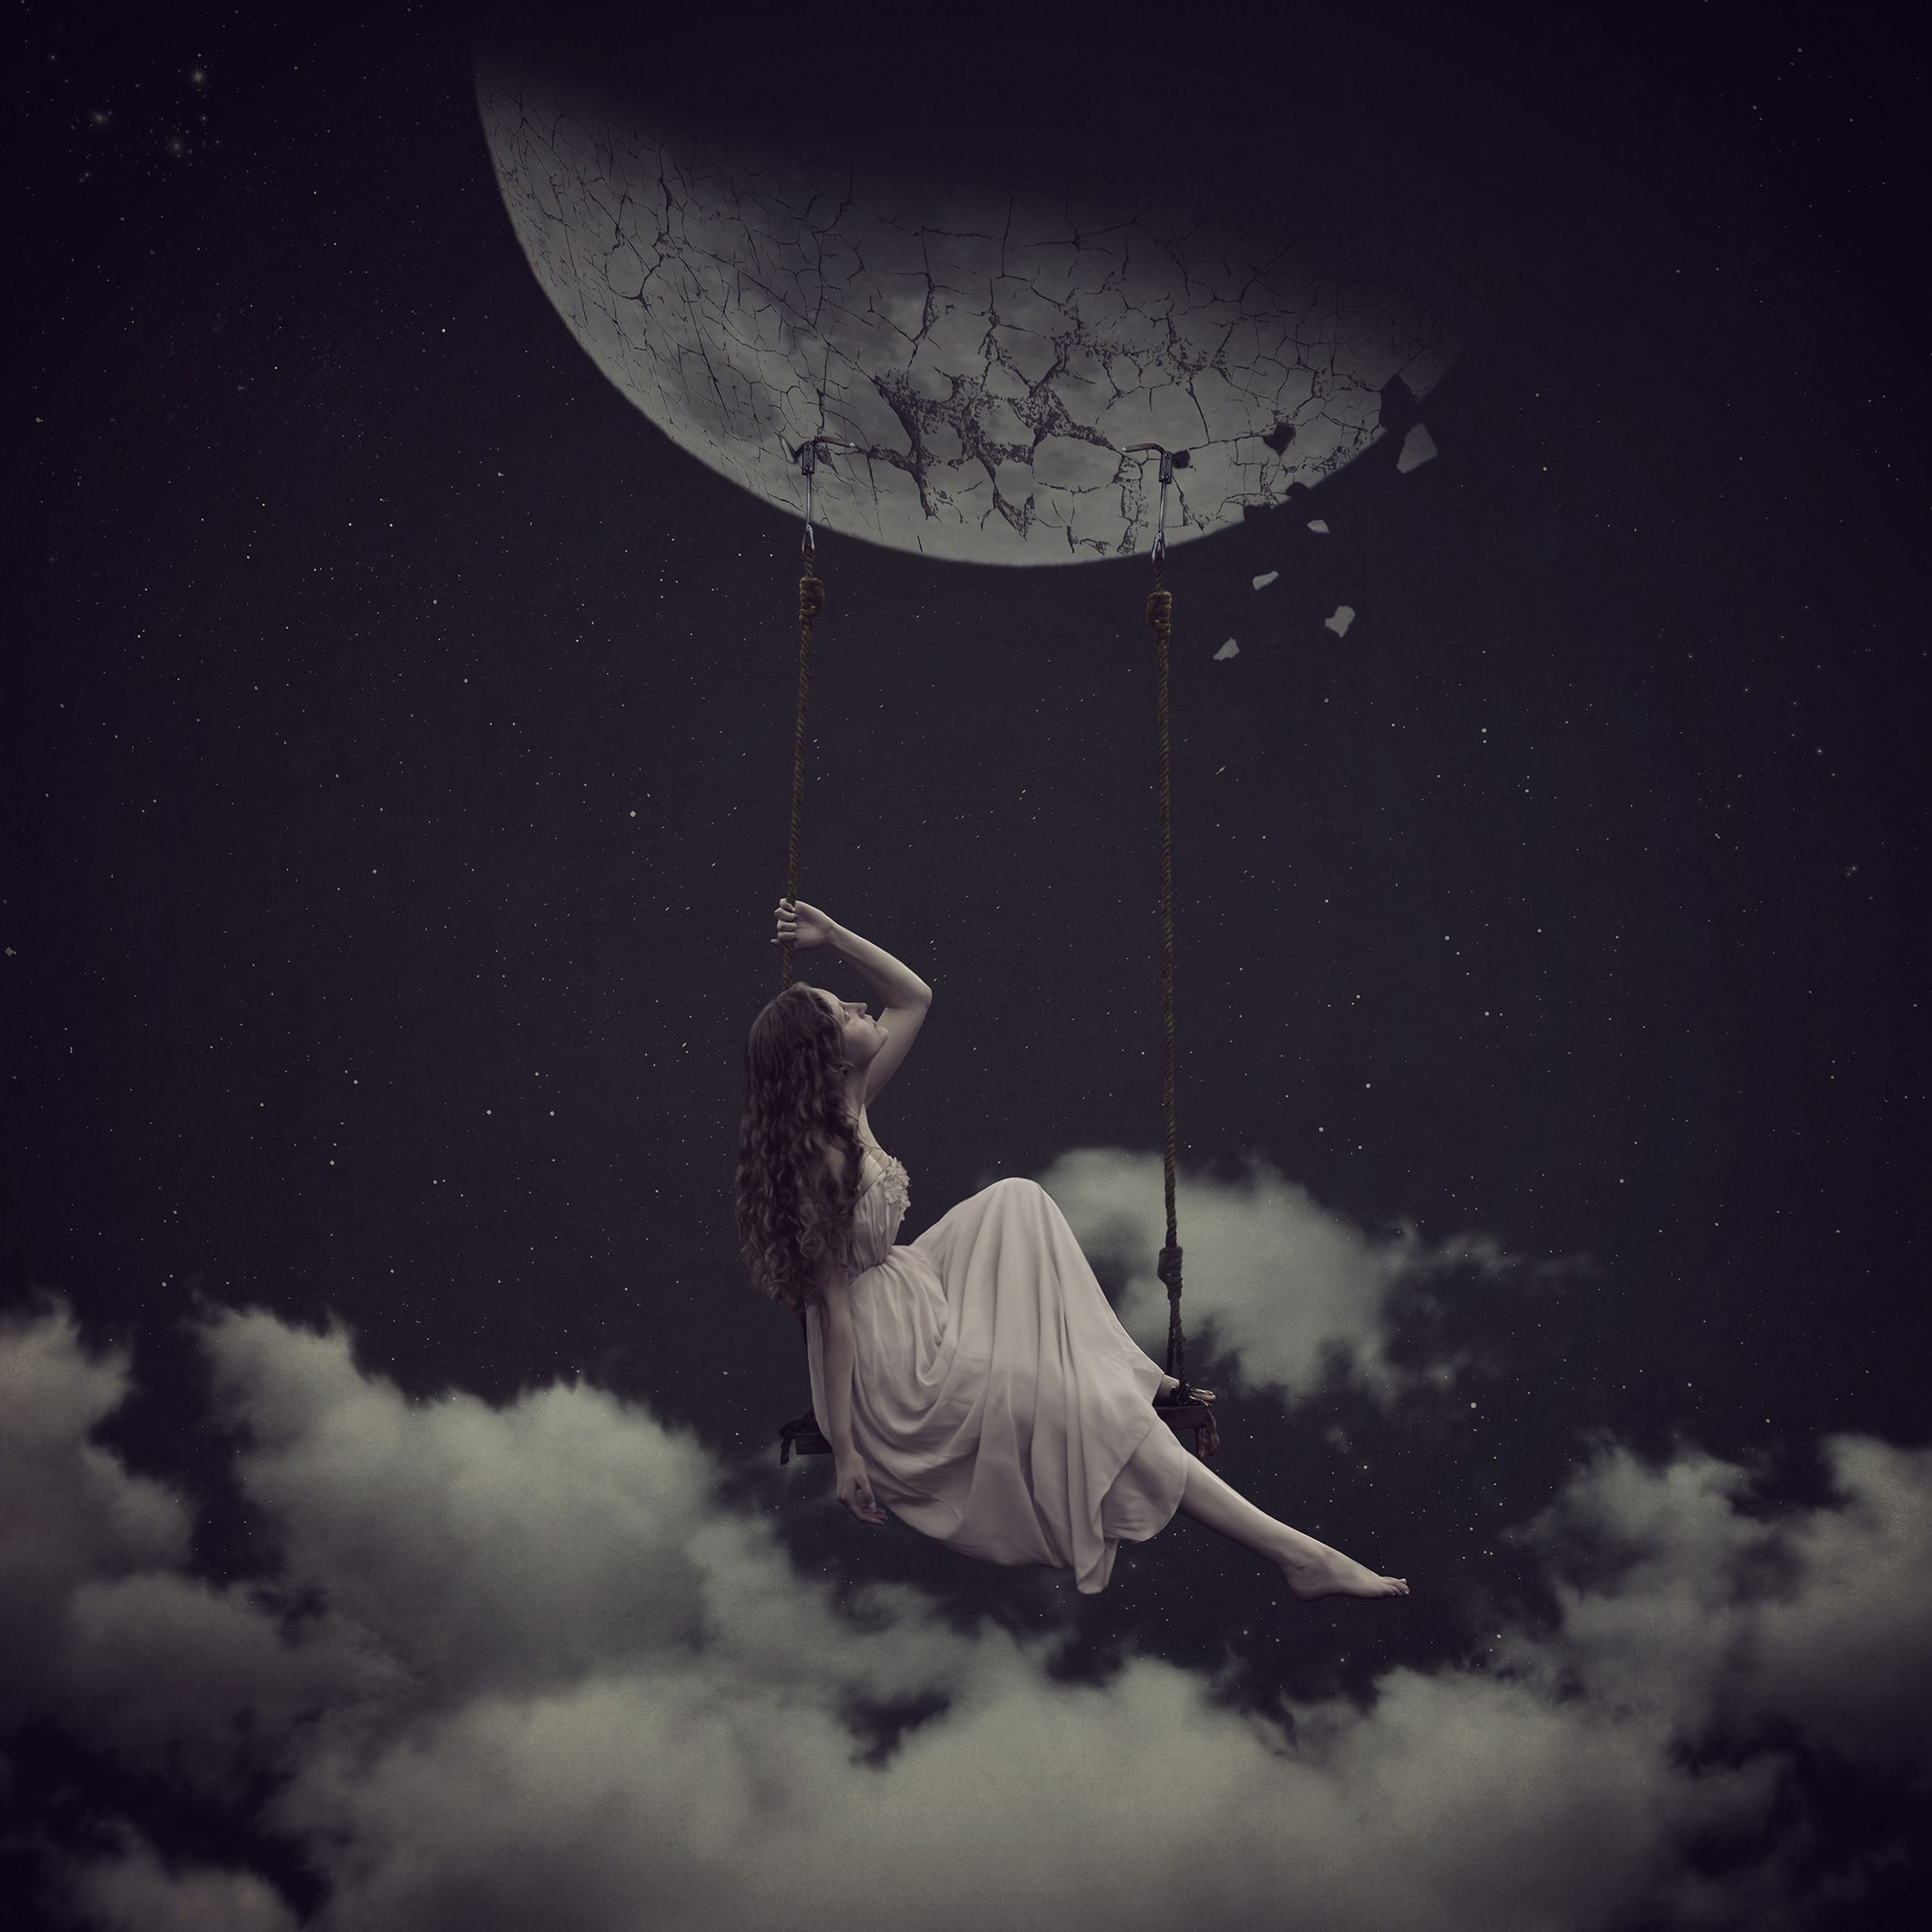 She wanted it so much... to hang by the moon and swing in the clouds. But her plans became disenchented when the moon began to fall apart, much like her dreams.